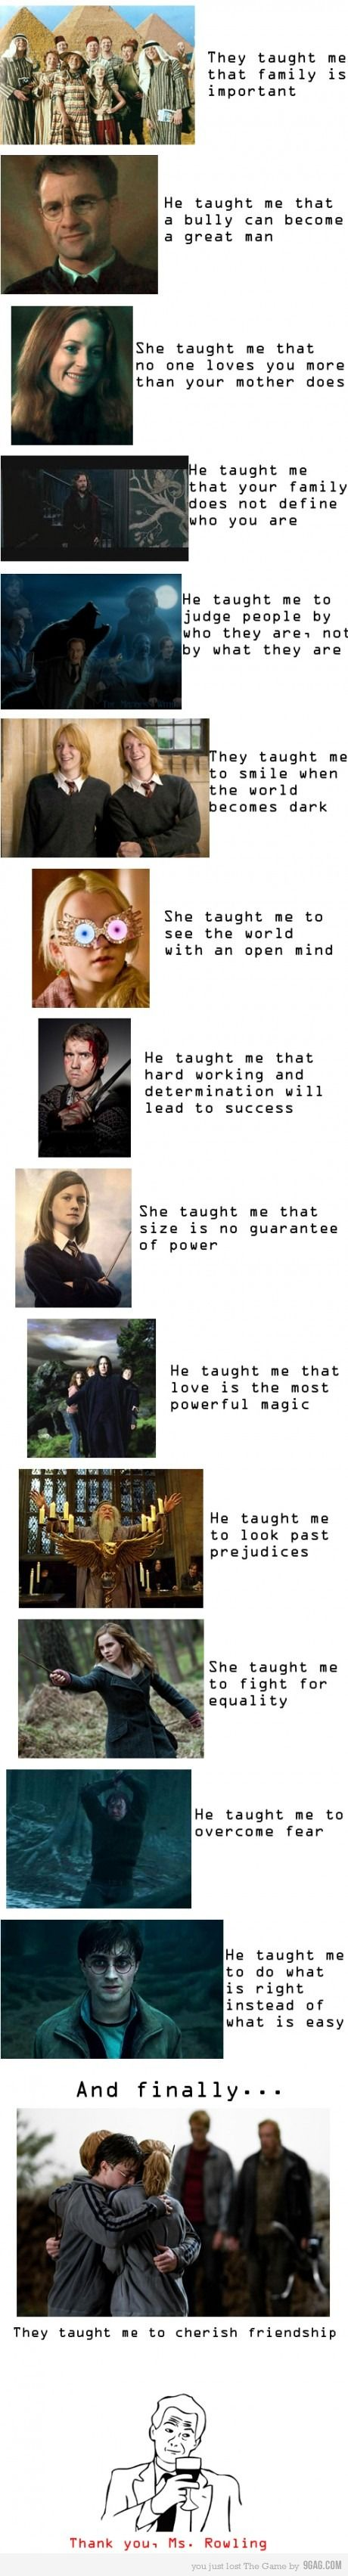 hp taught me...